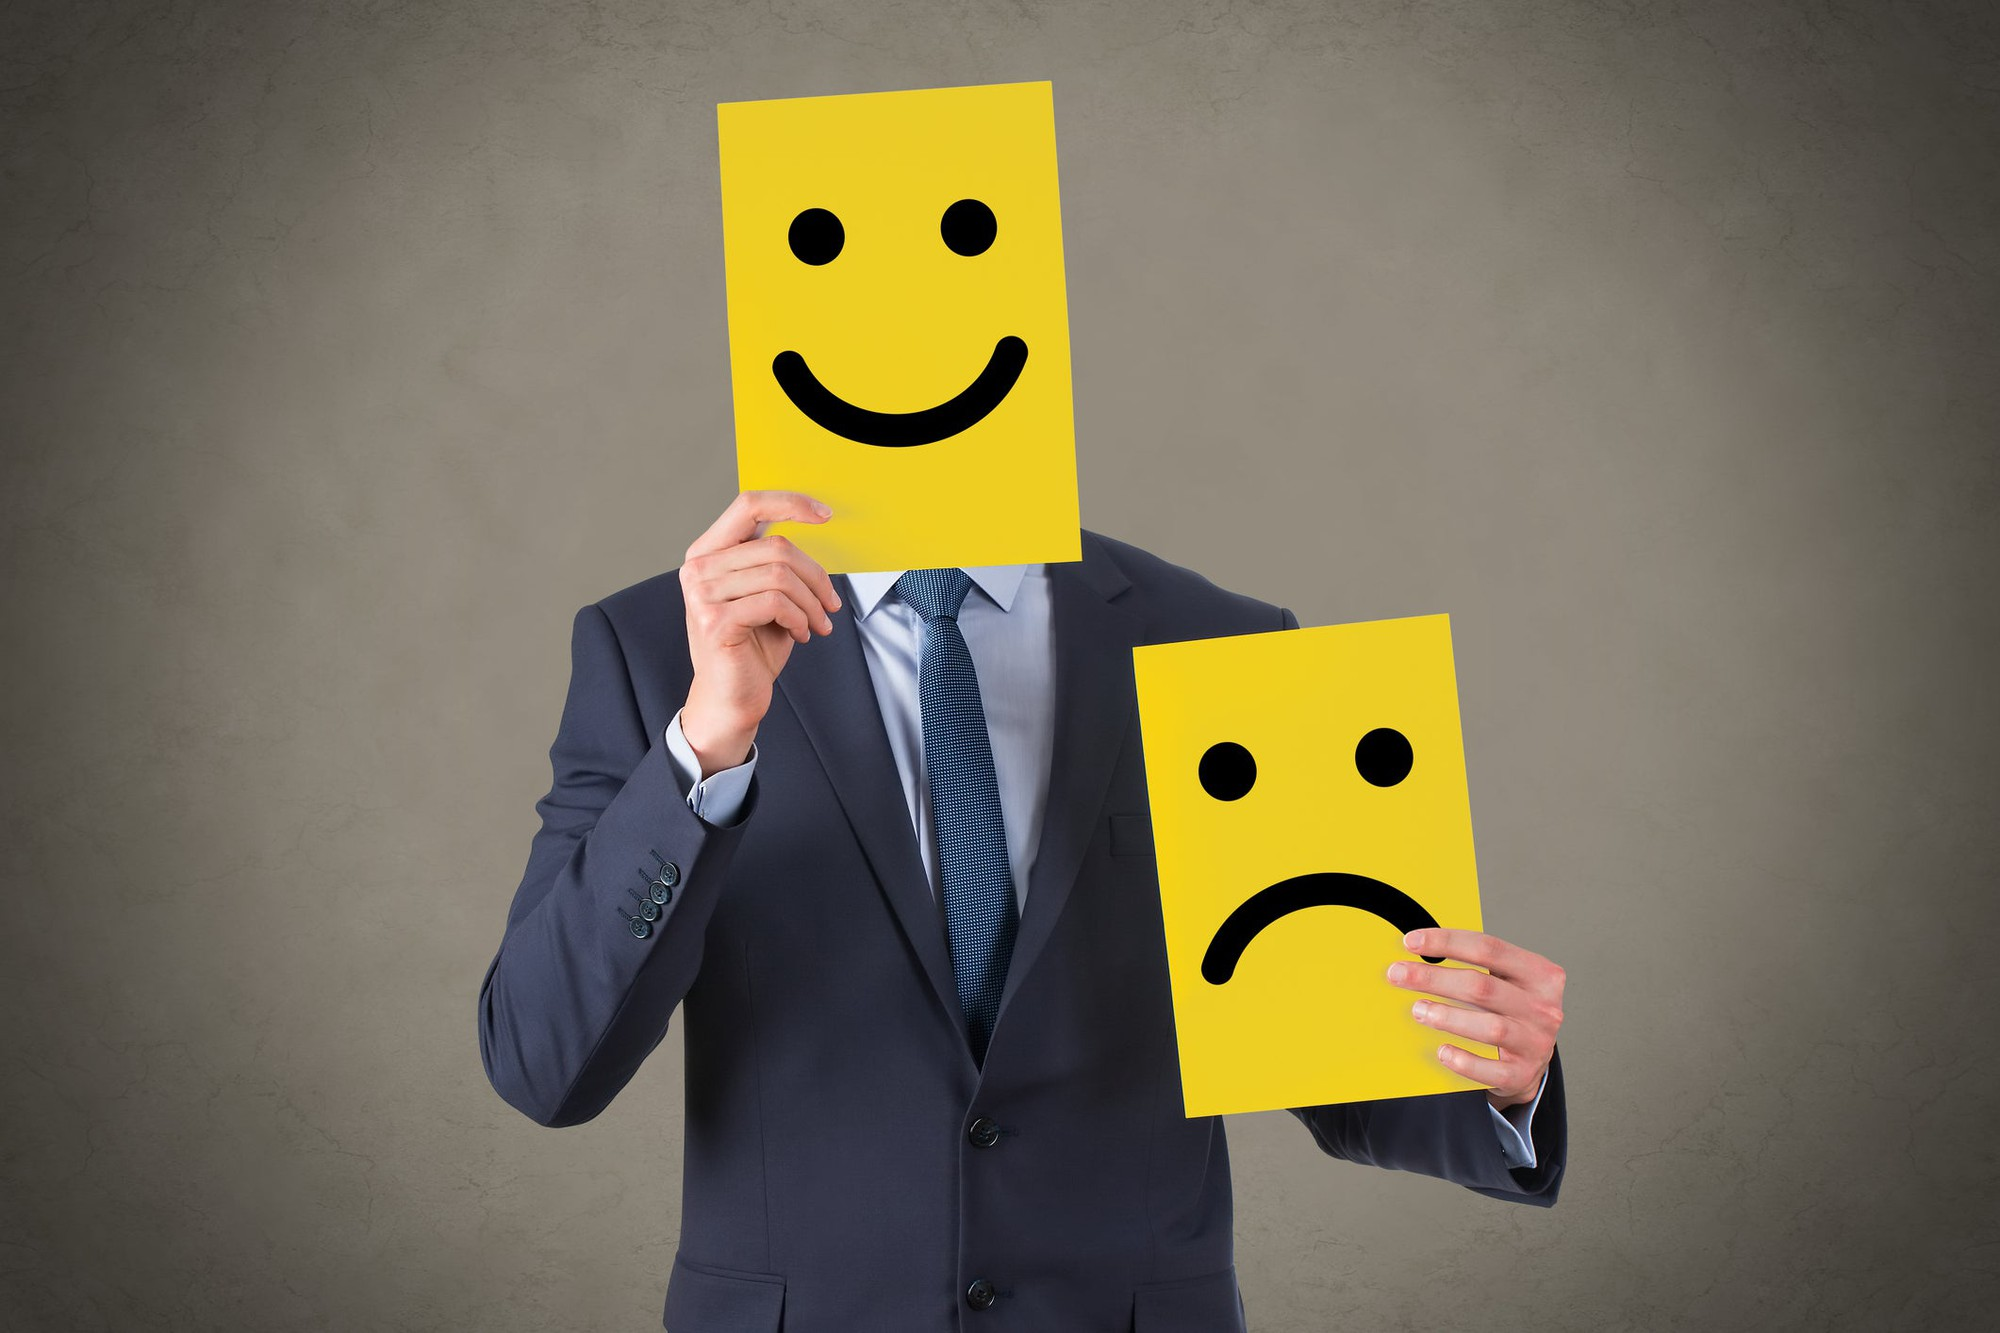 Deal with Negative Emotions